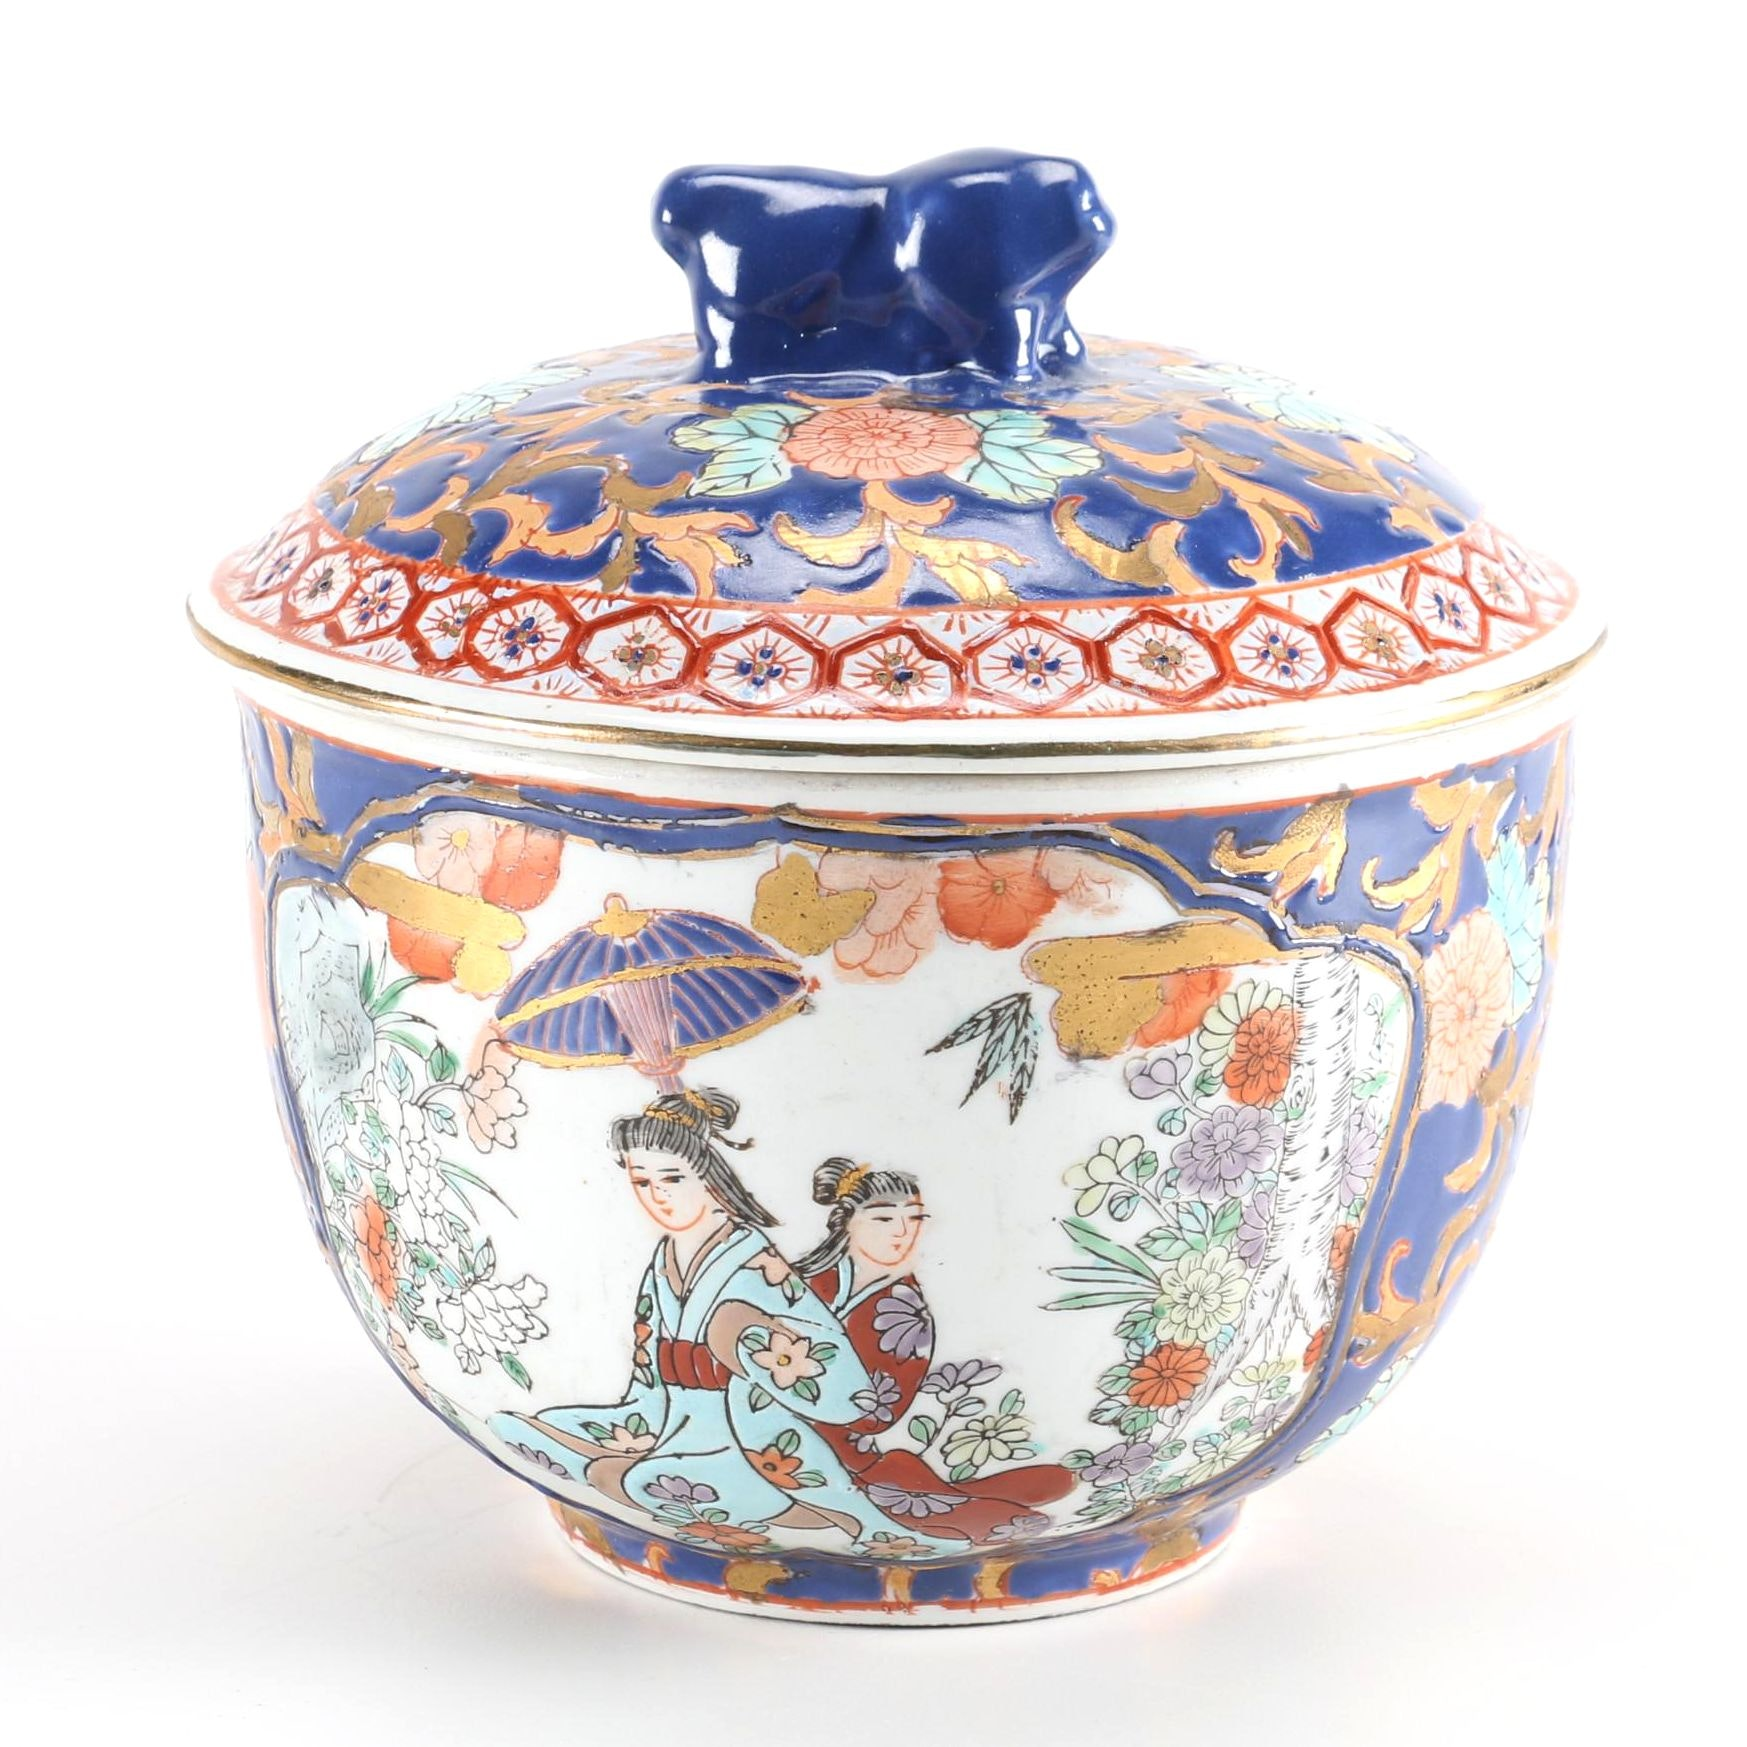 Japanese Porcelain Bowl with Lid